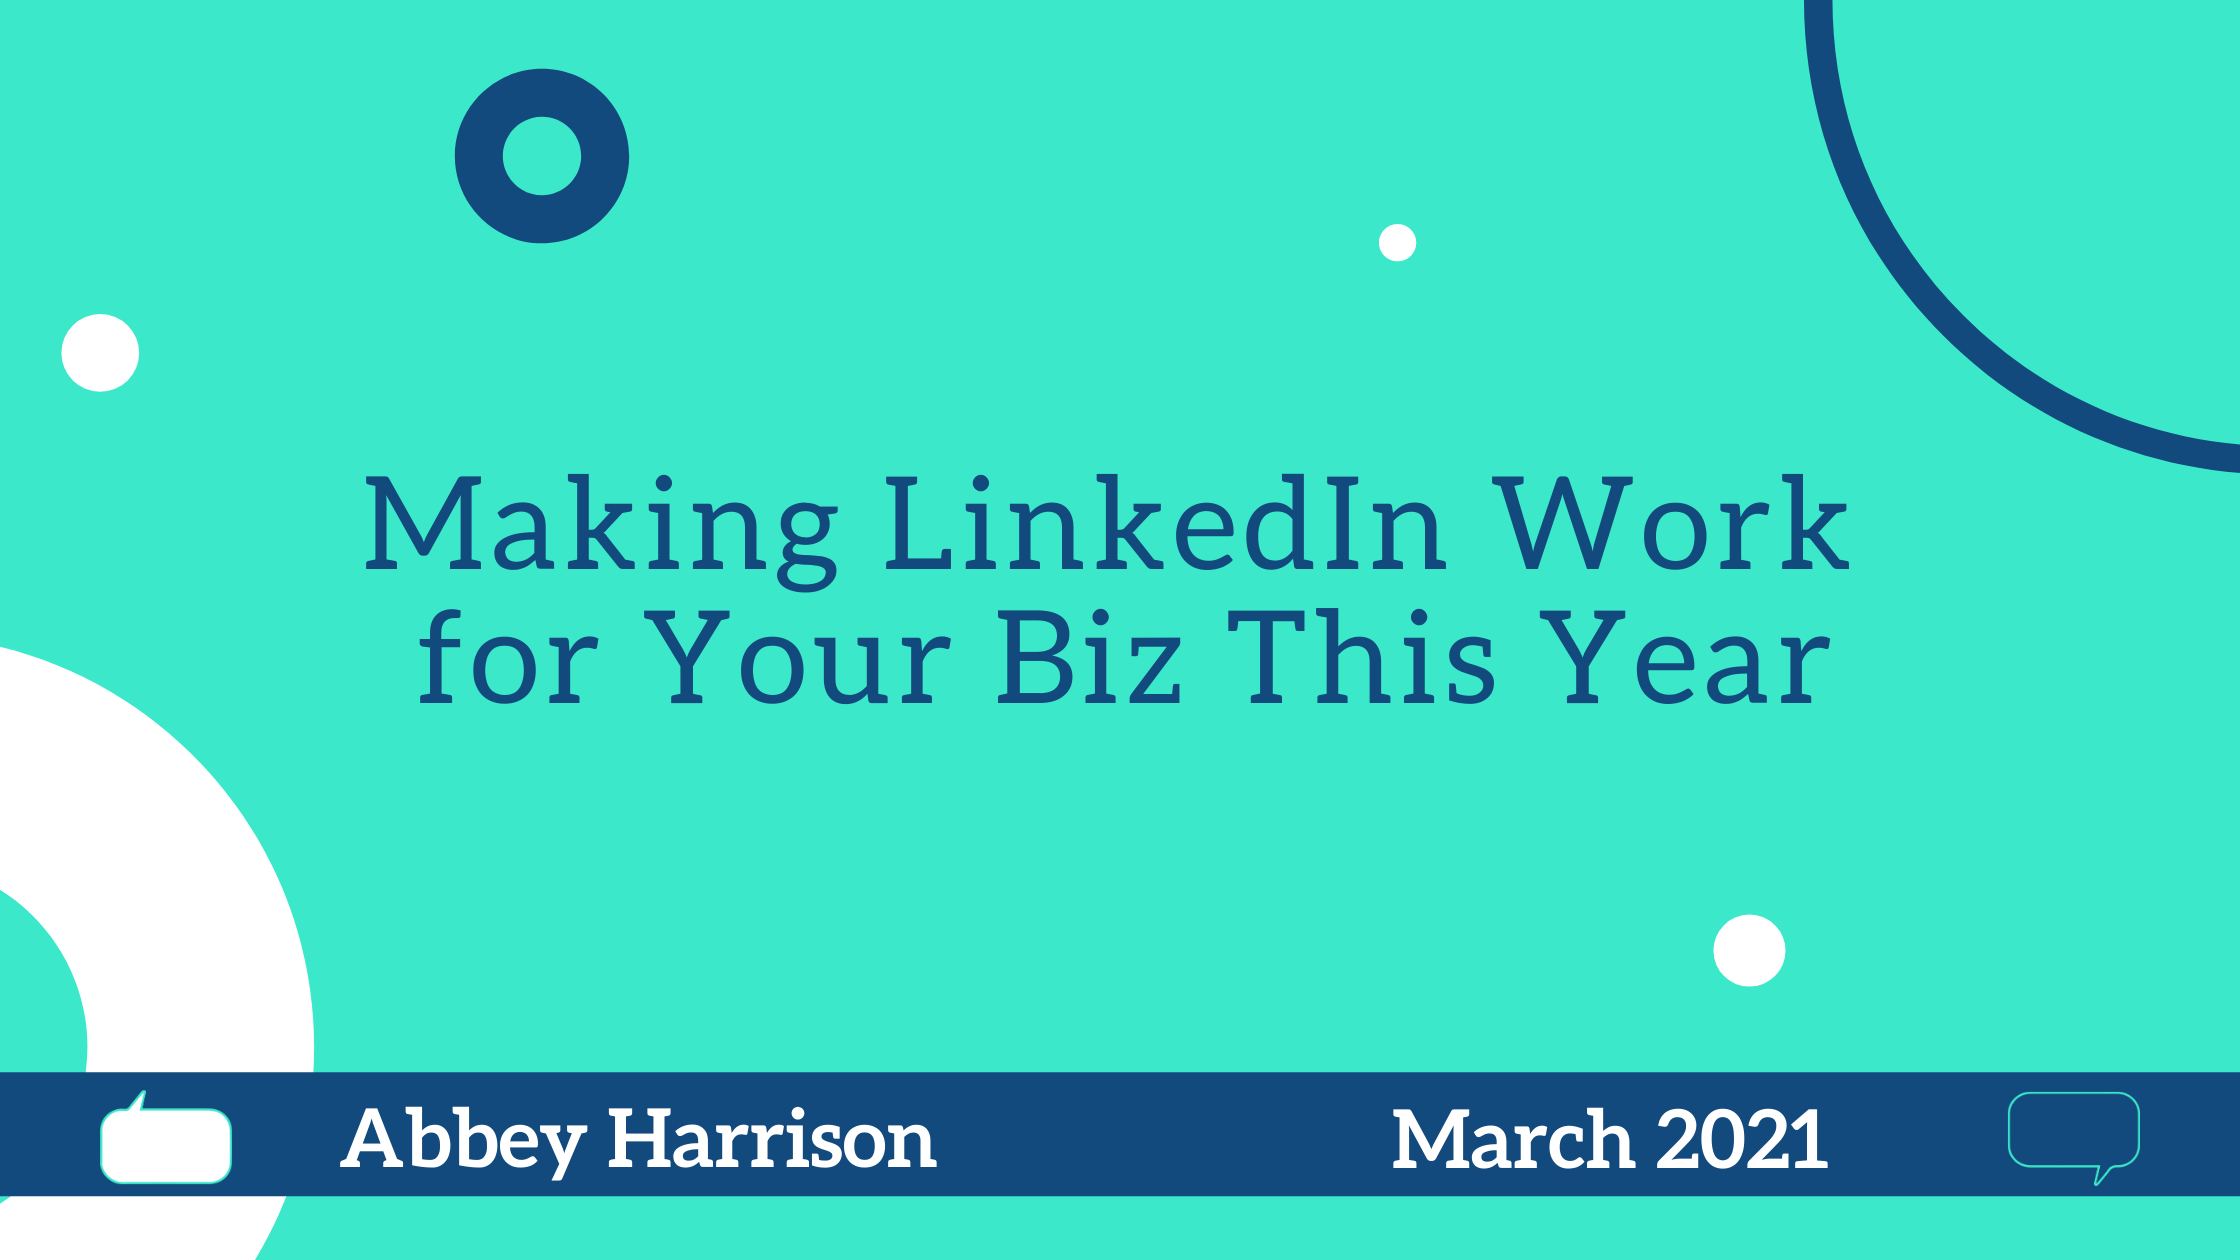 Making LinkedIn Work for Your Biz This Year